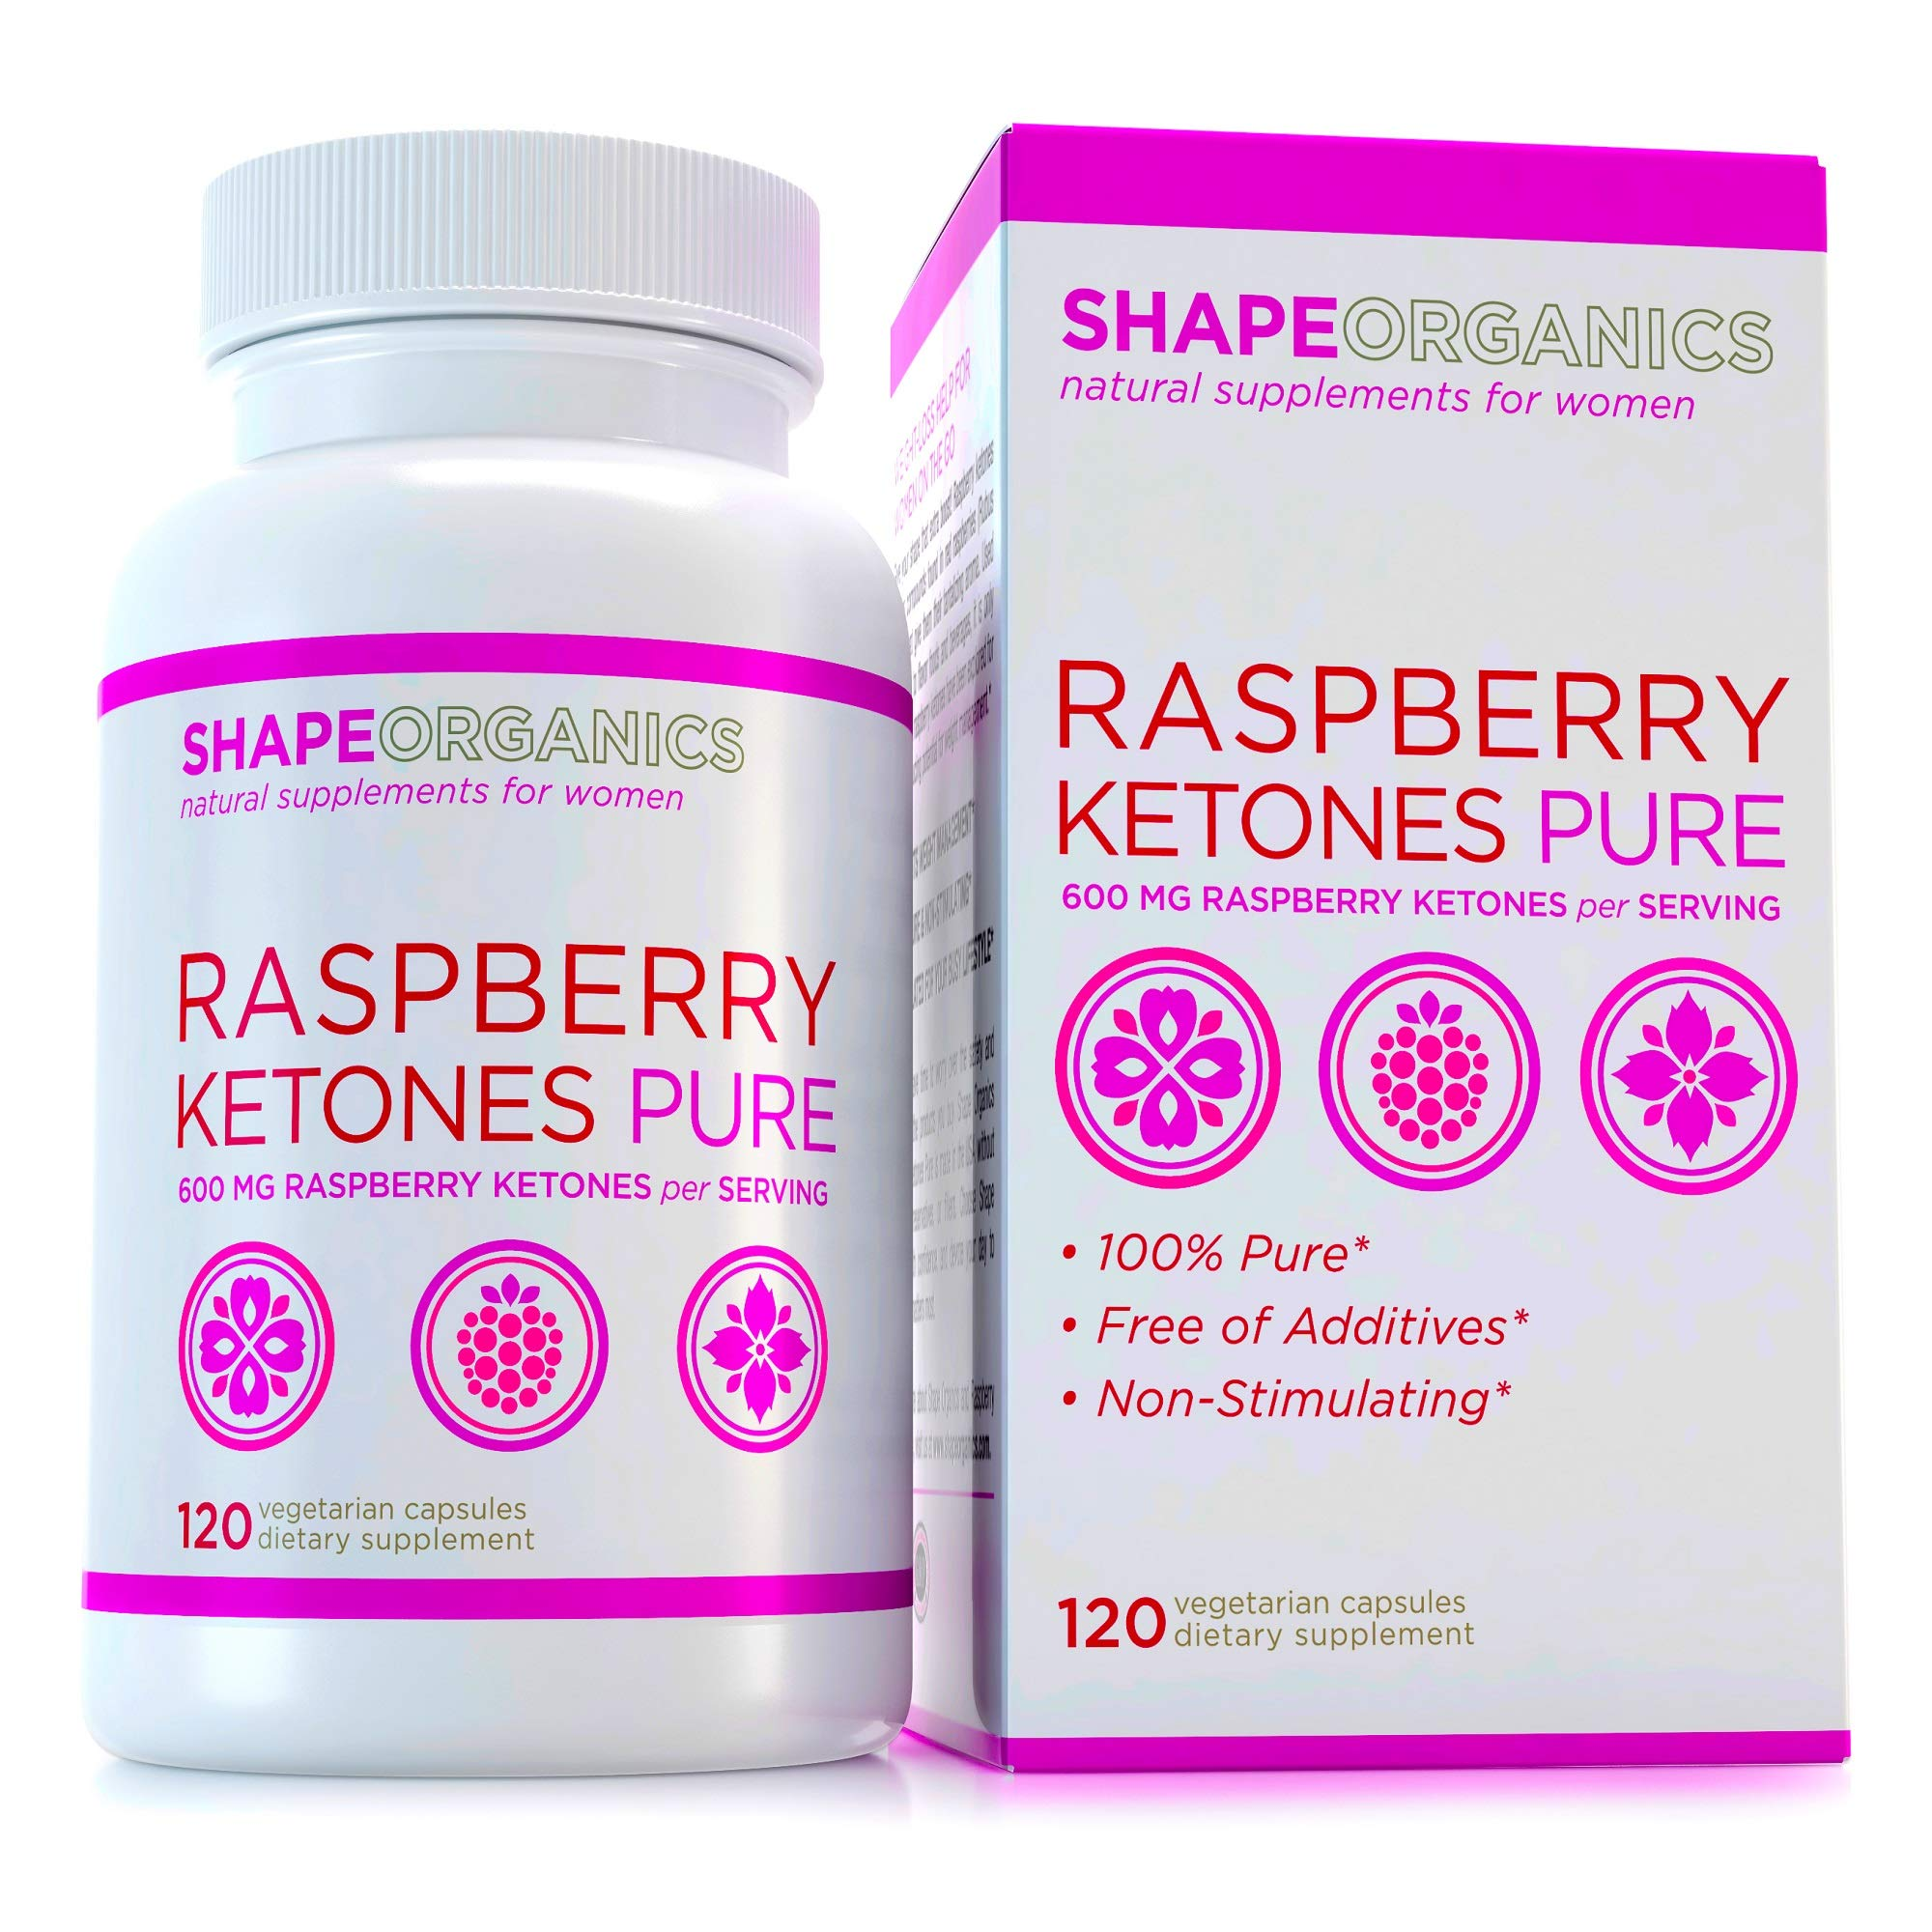 Strong Pure RASPBERRY KETONES Proven EFFECTIVE Fast Herbal Weight Loss Natural Appetite Suppressant LOSE WEIGHT, KEEP IT OFF Flat Belly EXTREME FAT BURN Diet Pill That Work for Women Weight Management by Shape Organics